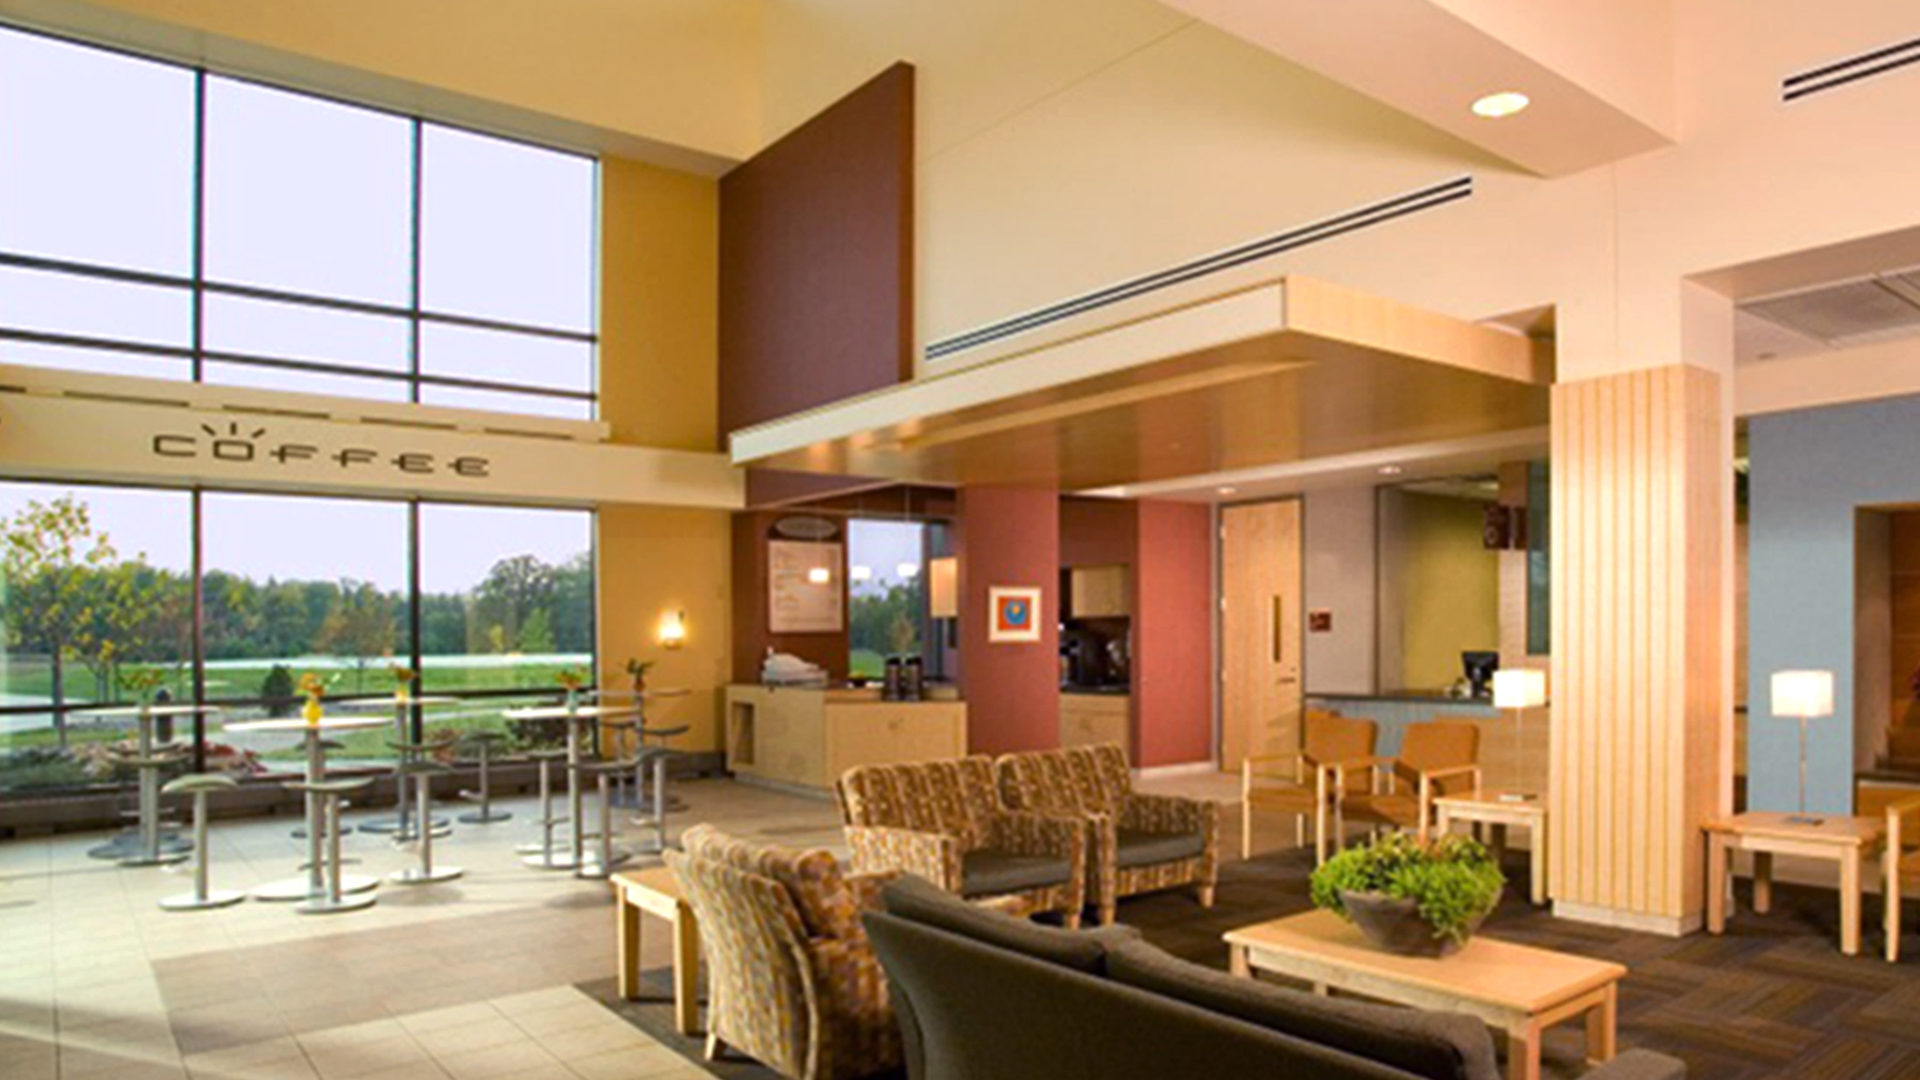 Grand Itasca Clinic & Hospital Interior Coffee Shop and Waiting Area